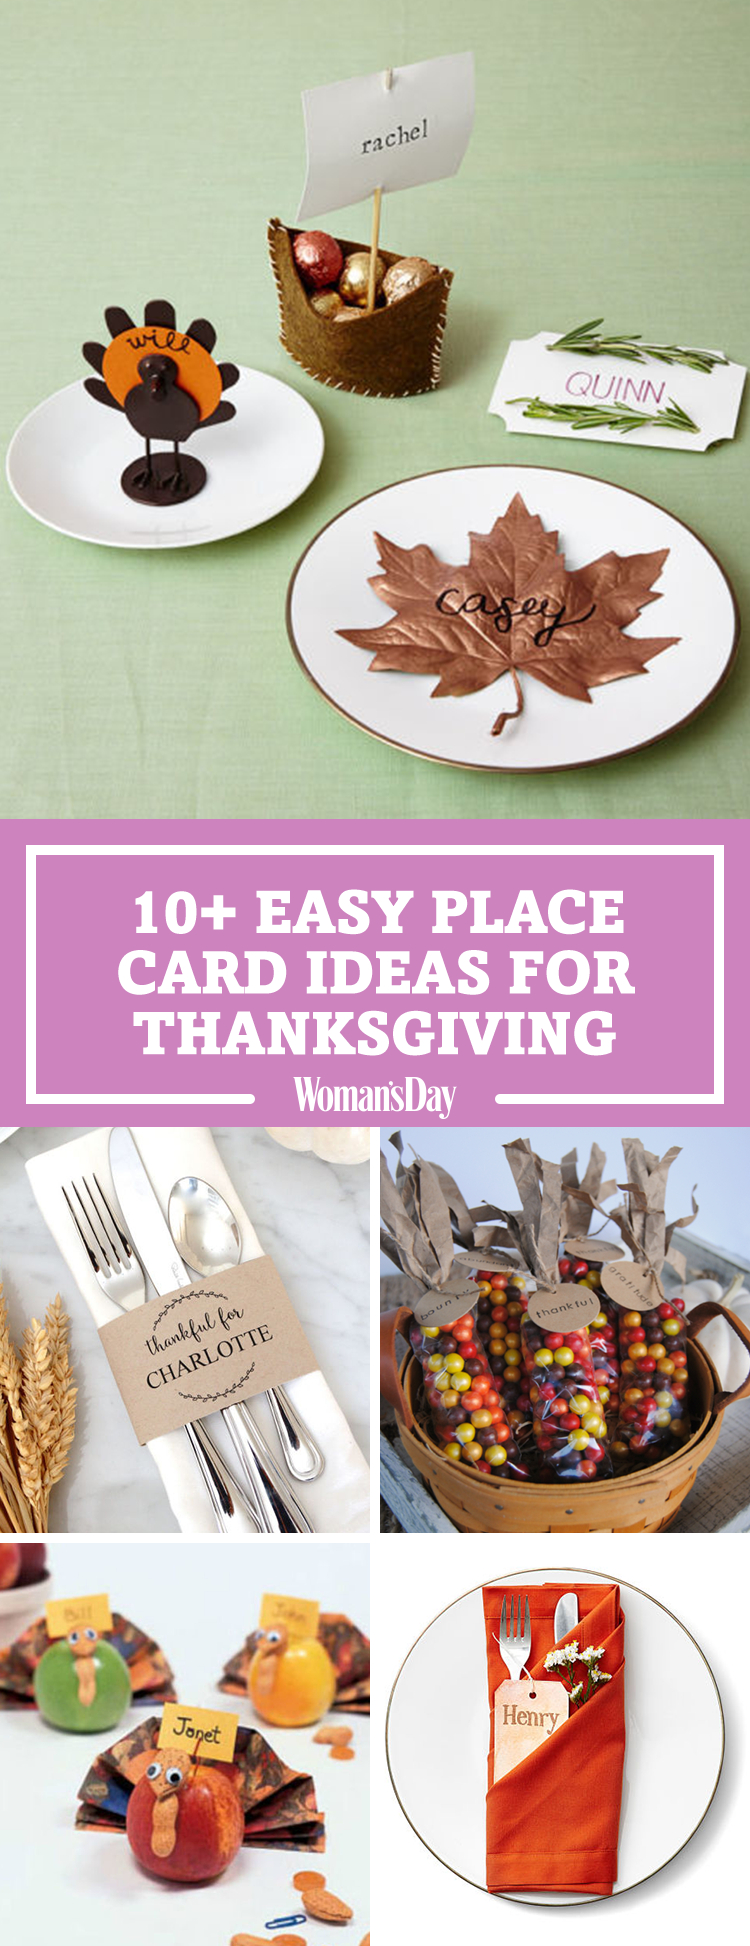 15 Diy Thanksgiving Place Cards - Craft Ideas For Fall Table Name Cards - Free Printable Personalized Thanksgiving Place Cards